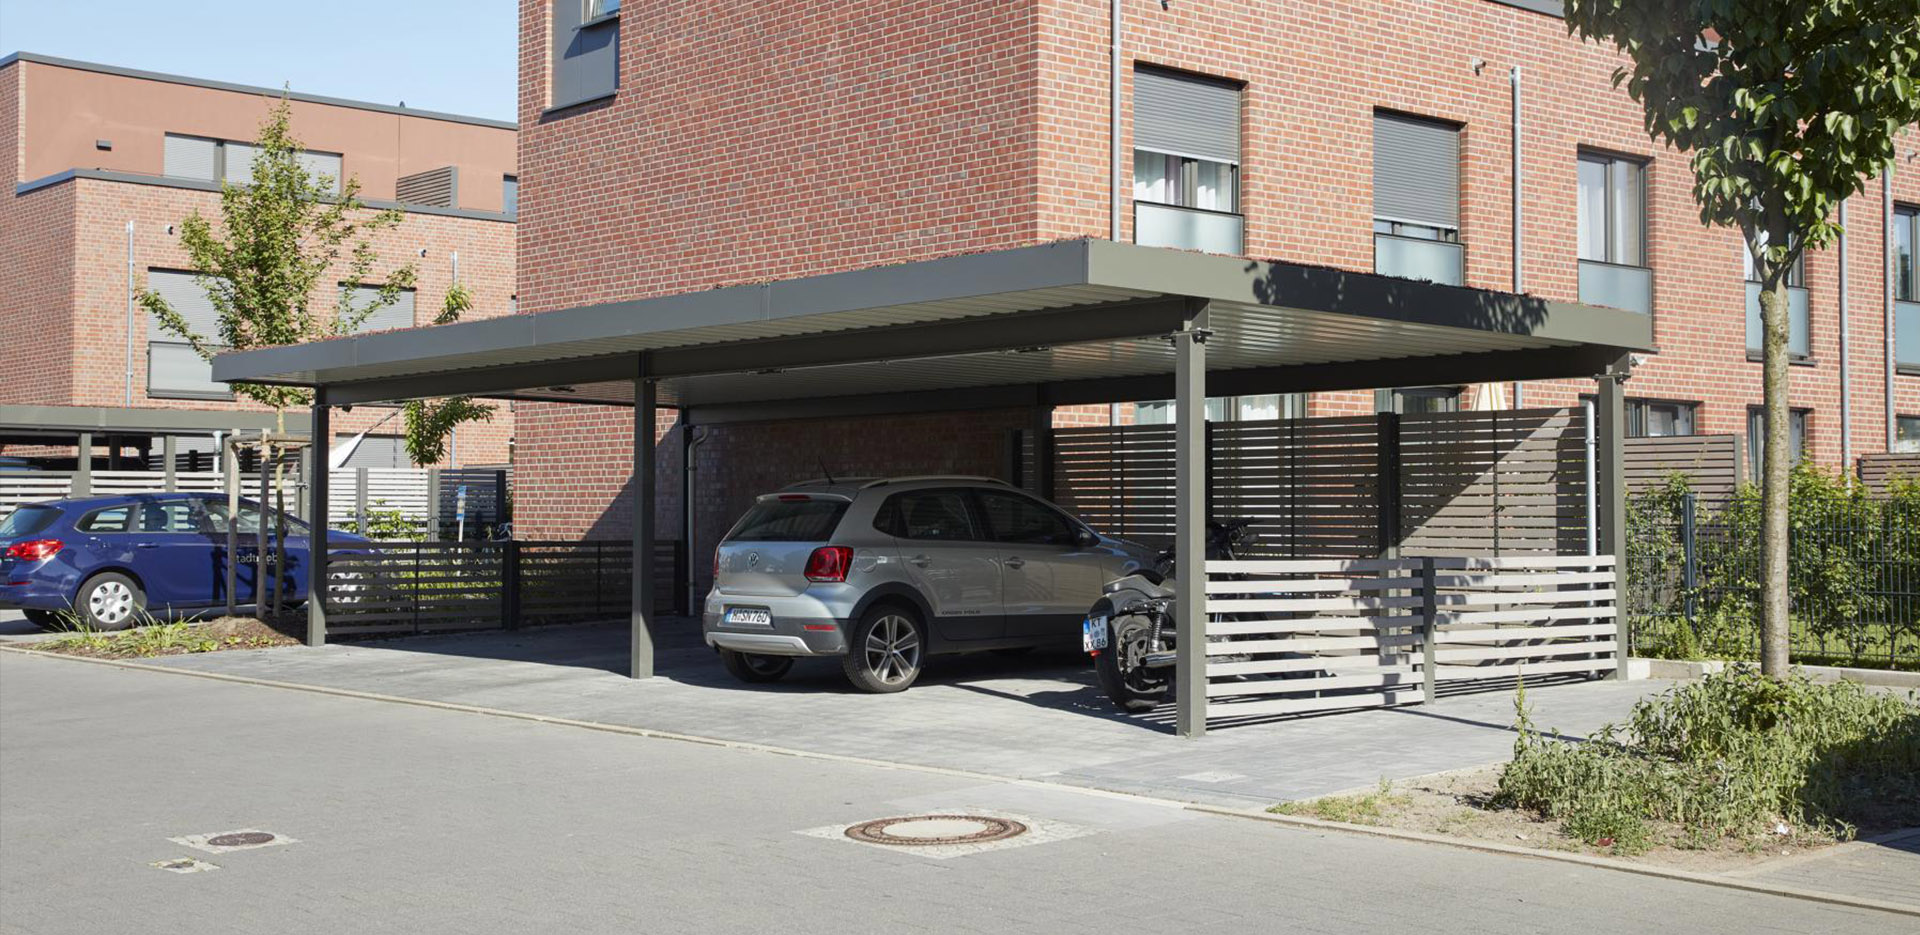 carports und einhausungen f r m llcontainer hannover projekt w systeme aus stahl. Black Bedroom Furniture Sets. Home Design Ideas